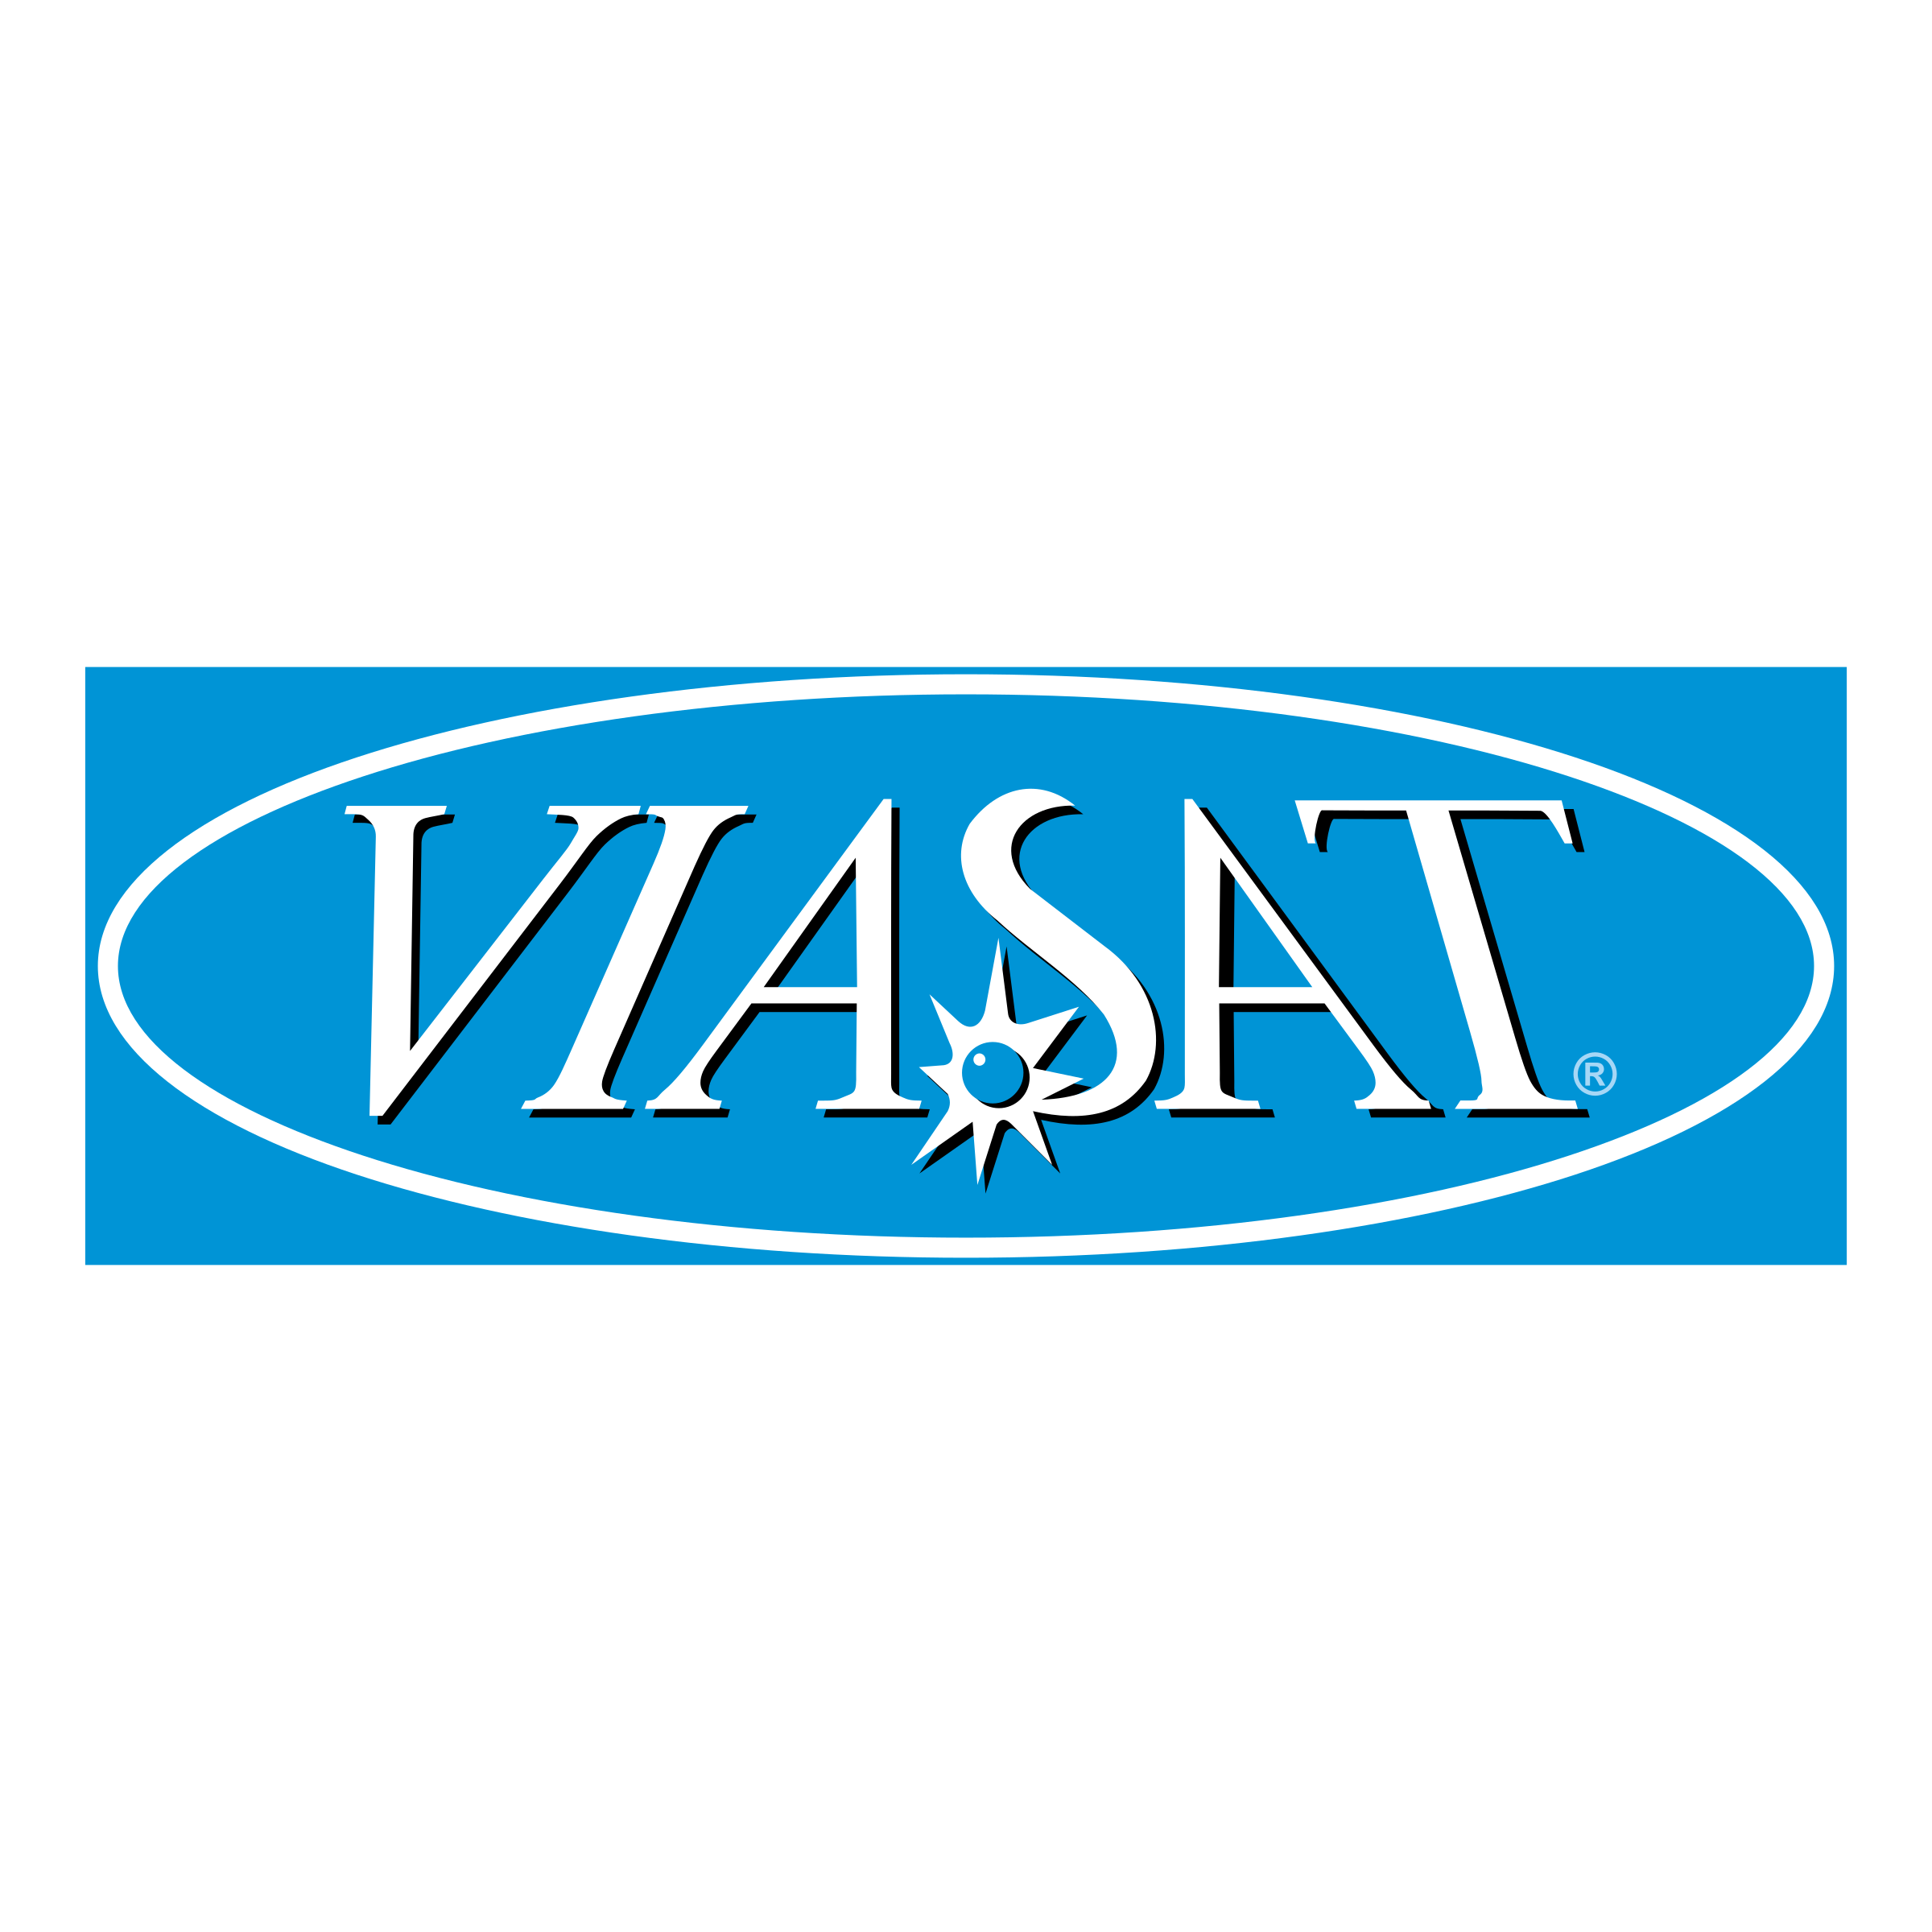 Viasat Logo PNG Transparent & SVG Vector.